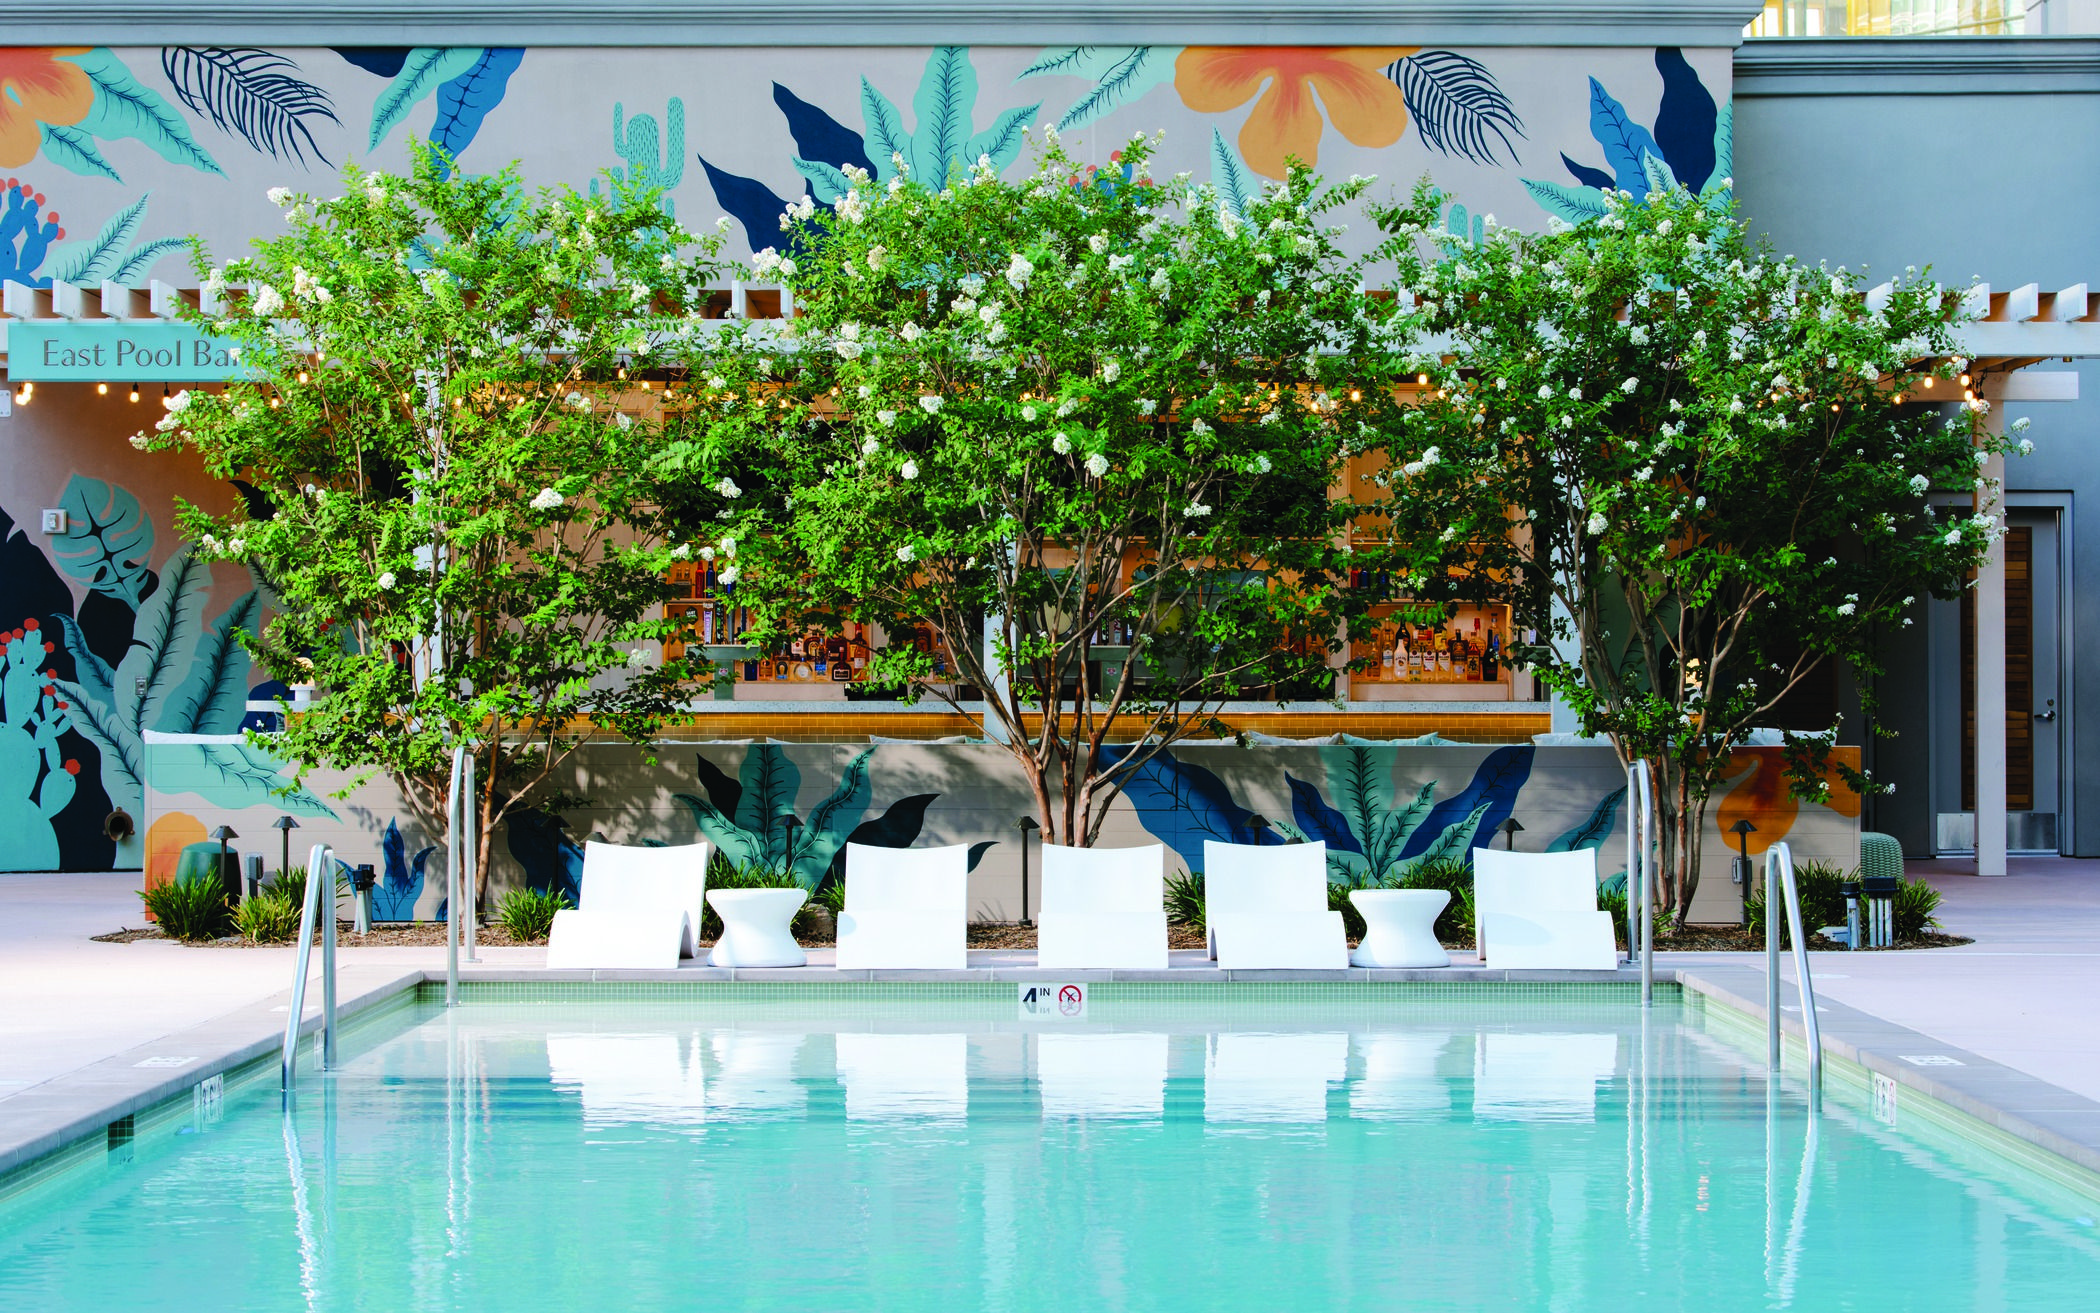 Taking A Girls Trip To Vegas Park Mgm S Pool Is Totally Instagram Worthy Park Mgm Las Vegas Pool Pool Cabana Las Vegas Pool Pool